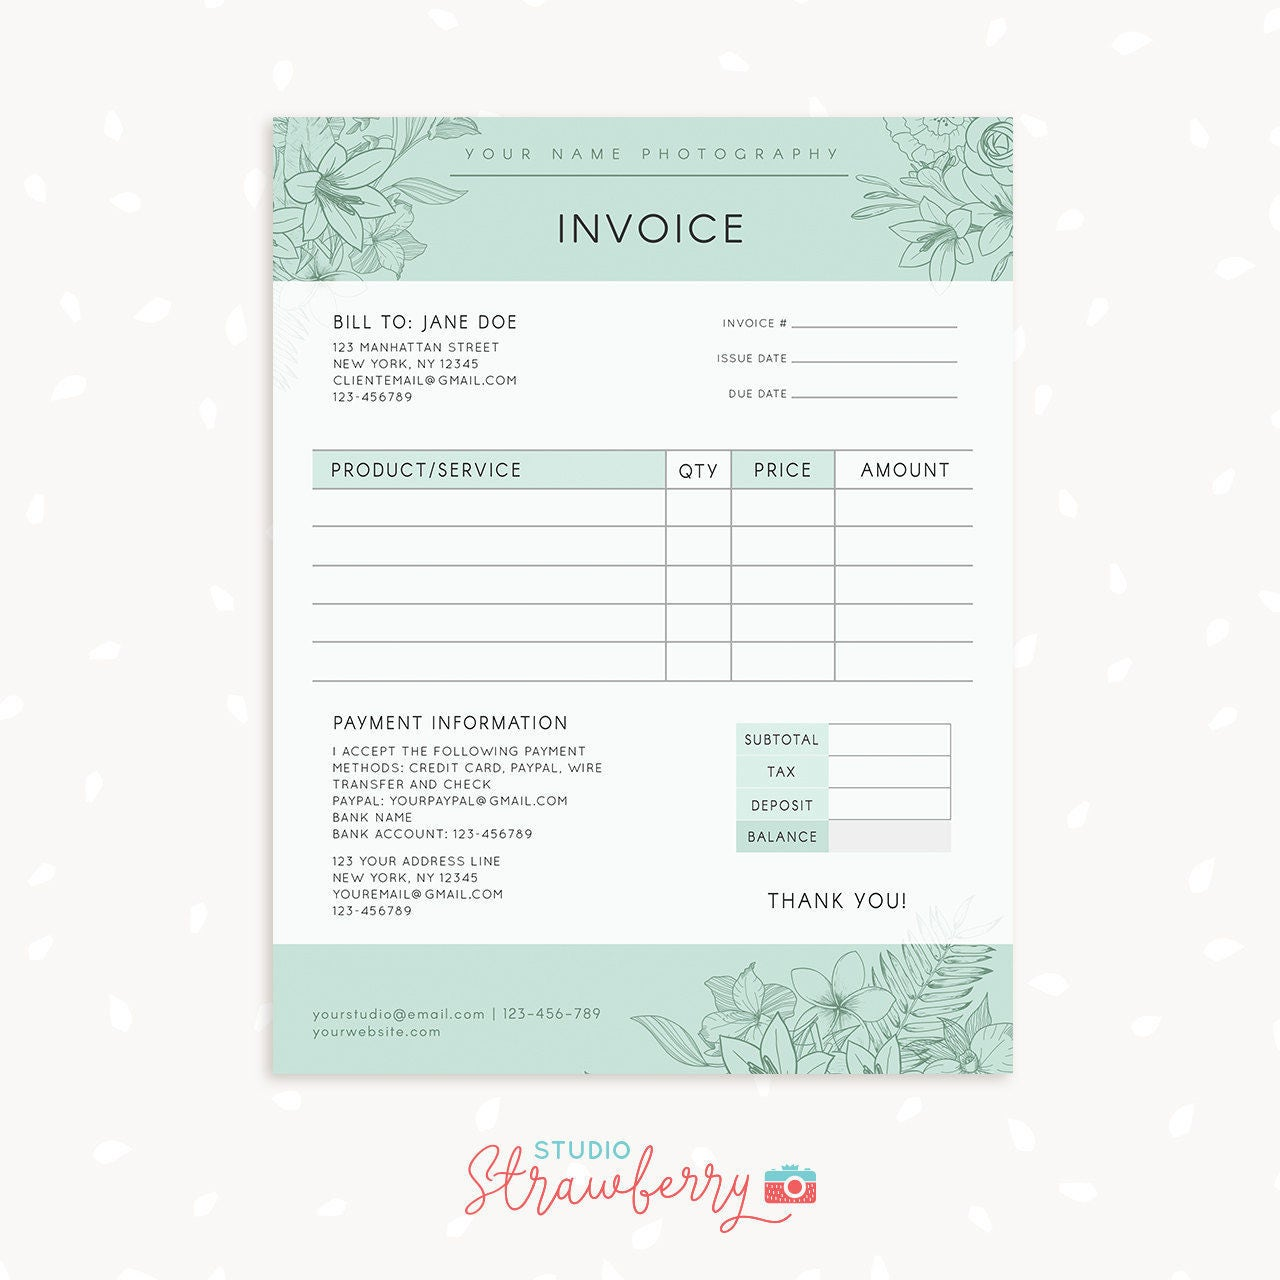 Invoice Template Photography Invoice Business Invoice - Free printable billing invoice forms online store credit cards guaranteed approval